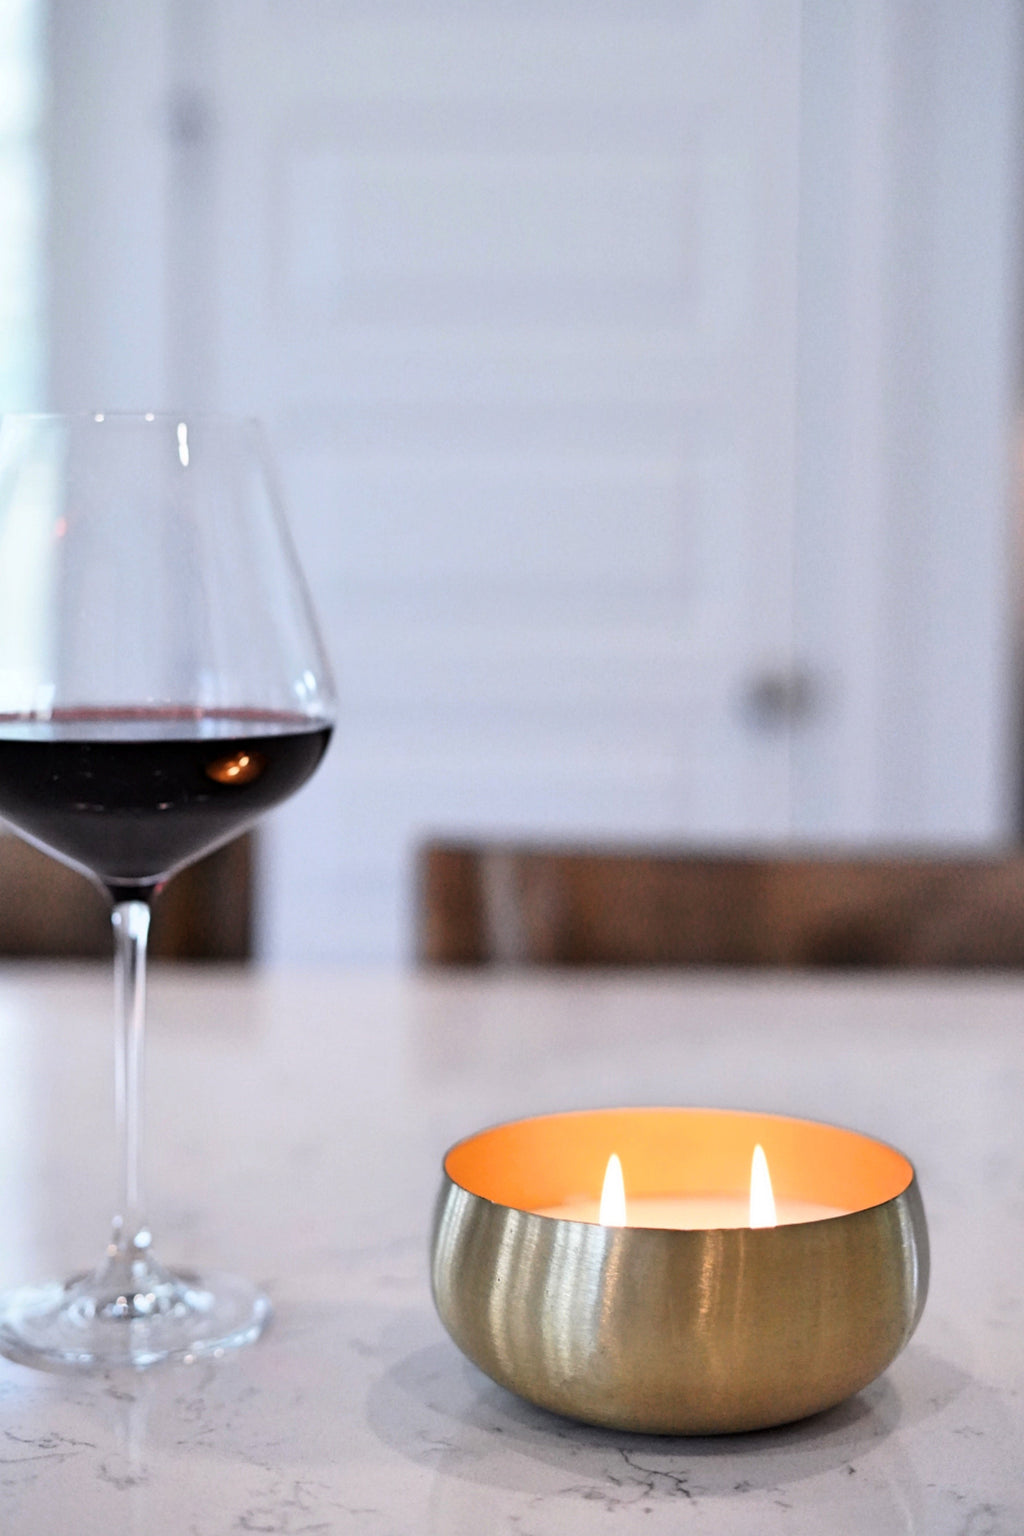 Pinot Noir Small Gold Bowl 14 oz Candle